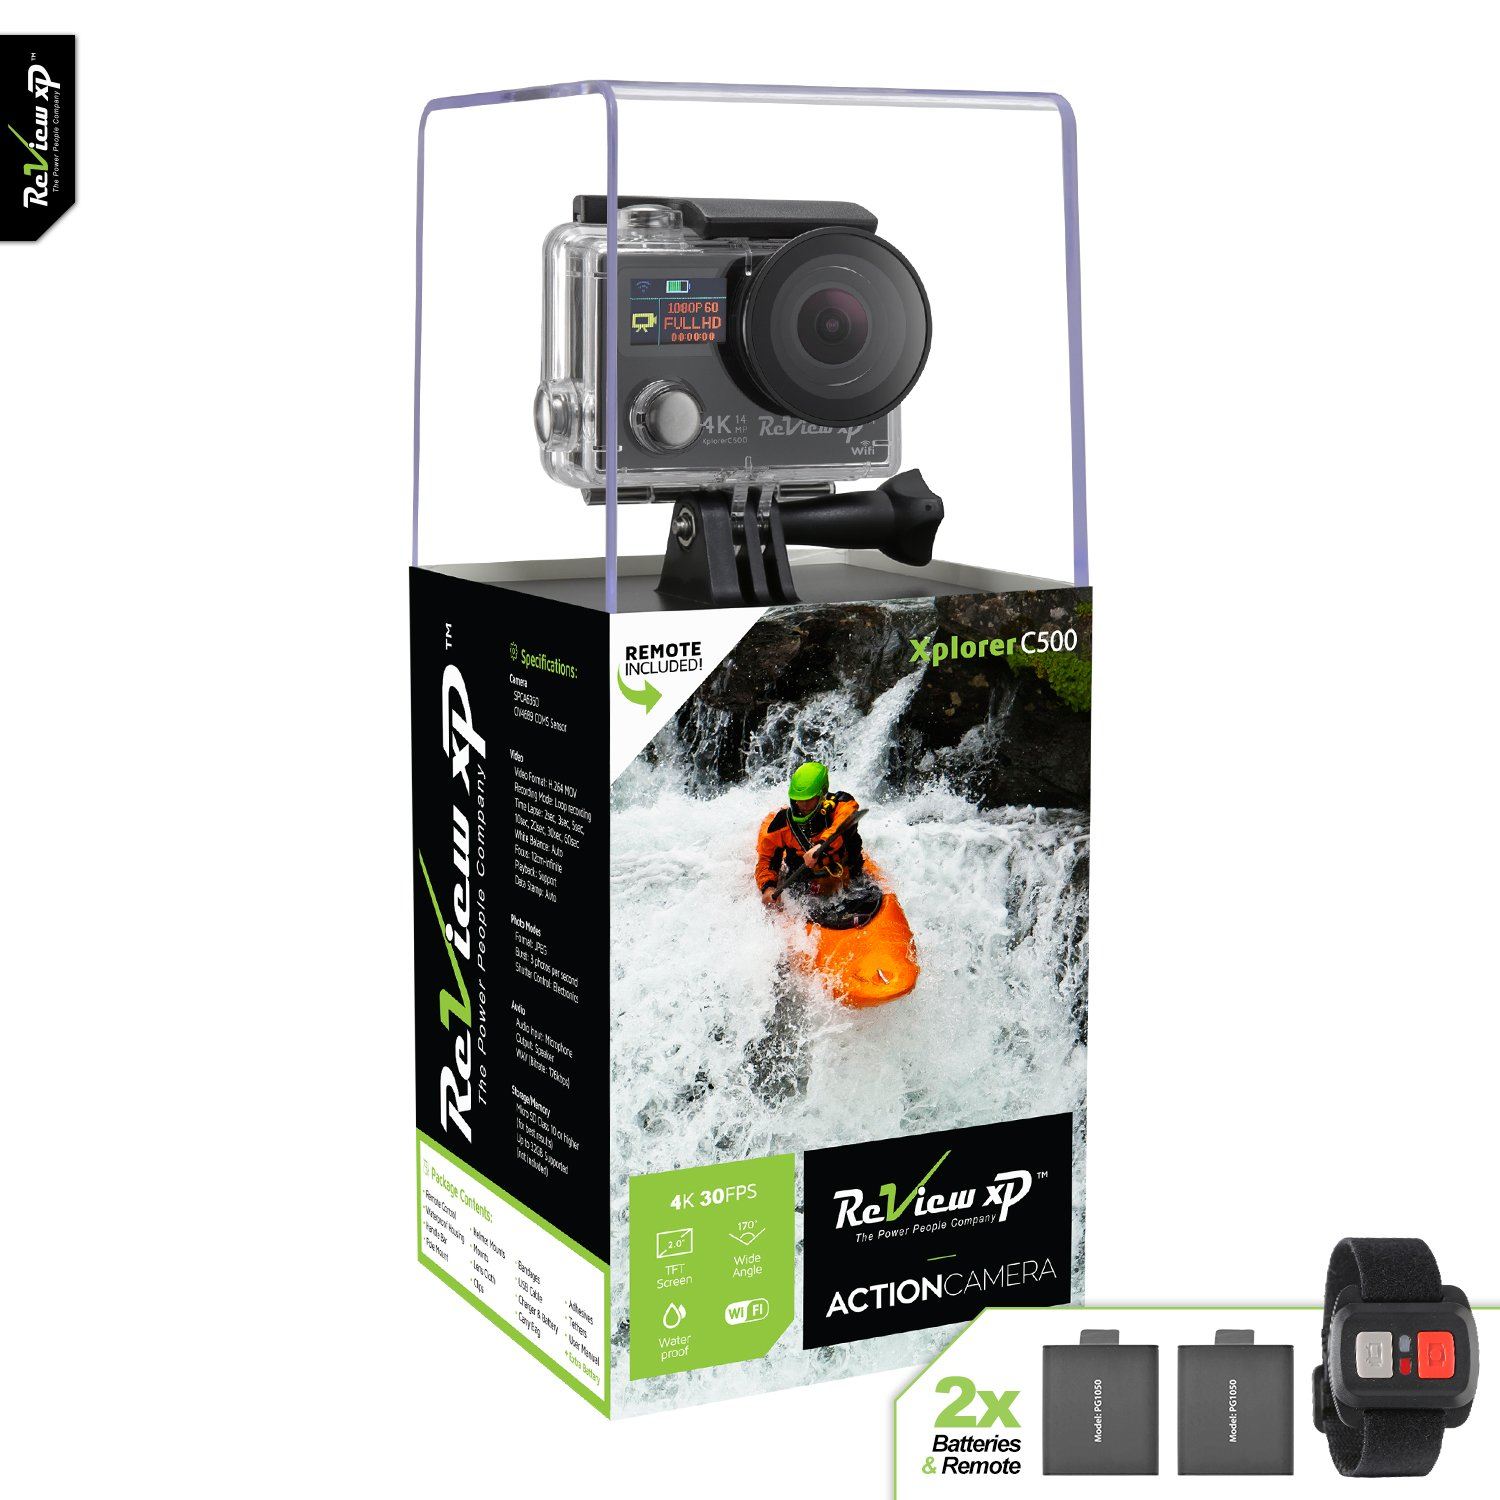 Review Xp 4k Hd Wi Fi Waterproof Action Camera 14mp Sport Cam Full With Remote 30fps Sports Video Underwater Camcorder 170 Wide Angle Dual Lens Screen 2 Batteries